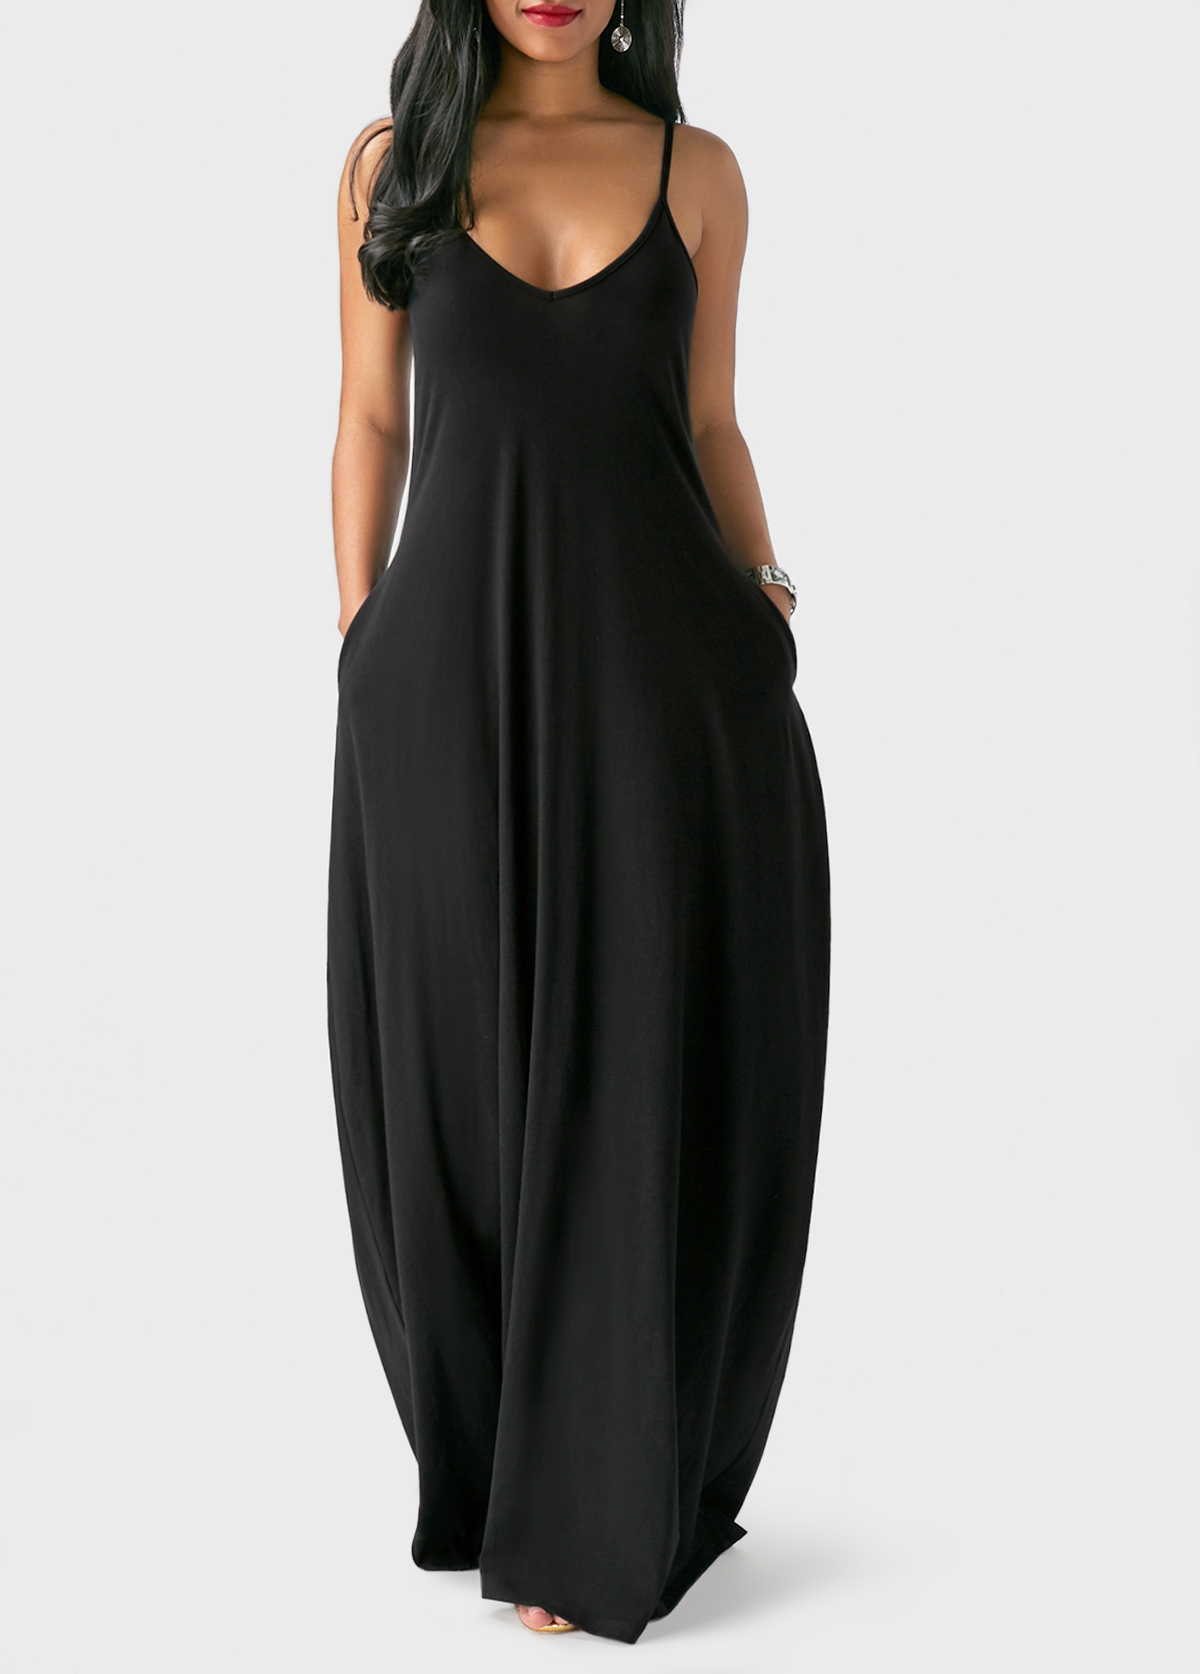 casual Dresses For Women Online Shop Free Shipping   Rosewe.com